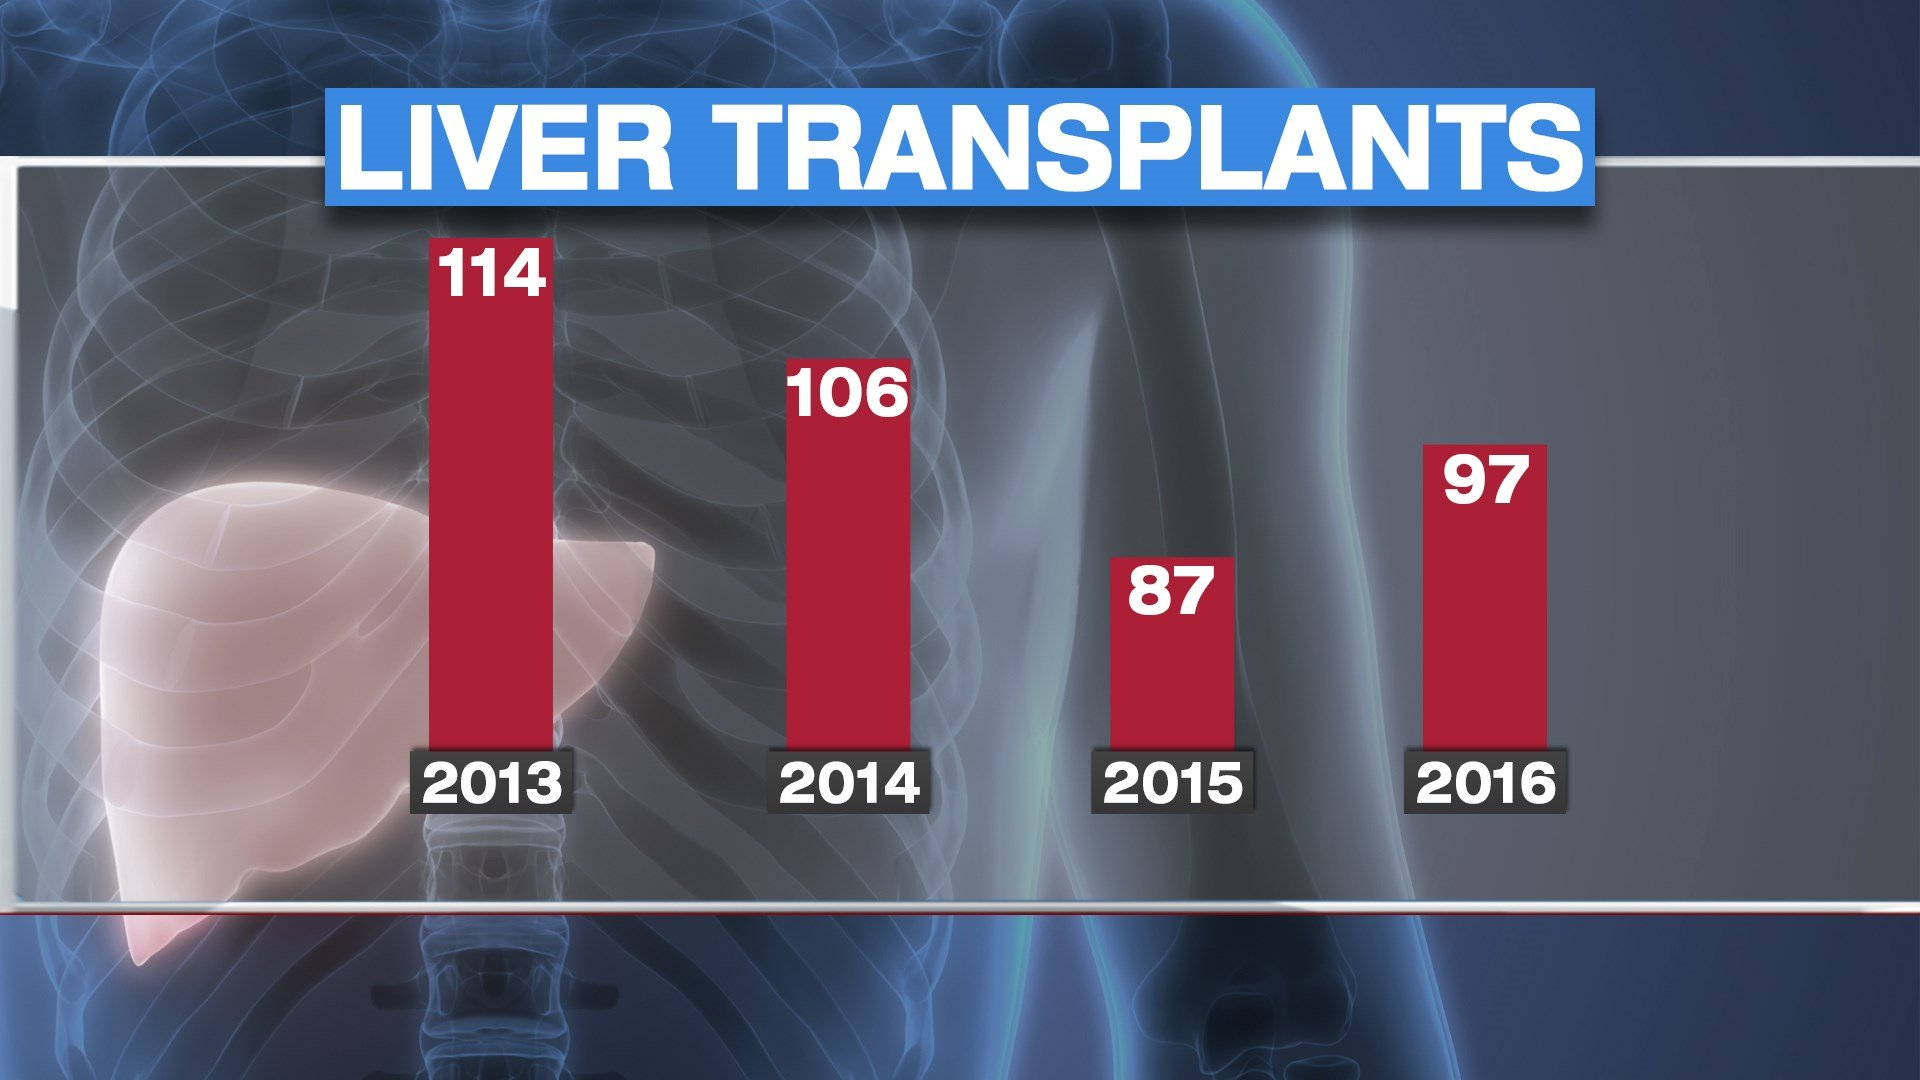 Doctors at the University of Kansas Hospital have been issuing a similar warning. They say under regional sharing programs, their liver transplant program has taken a hit. (KCTV5)